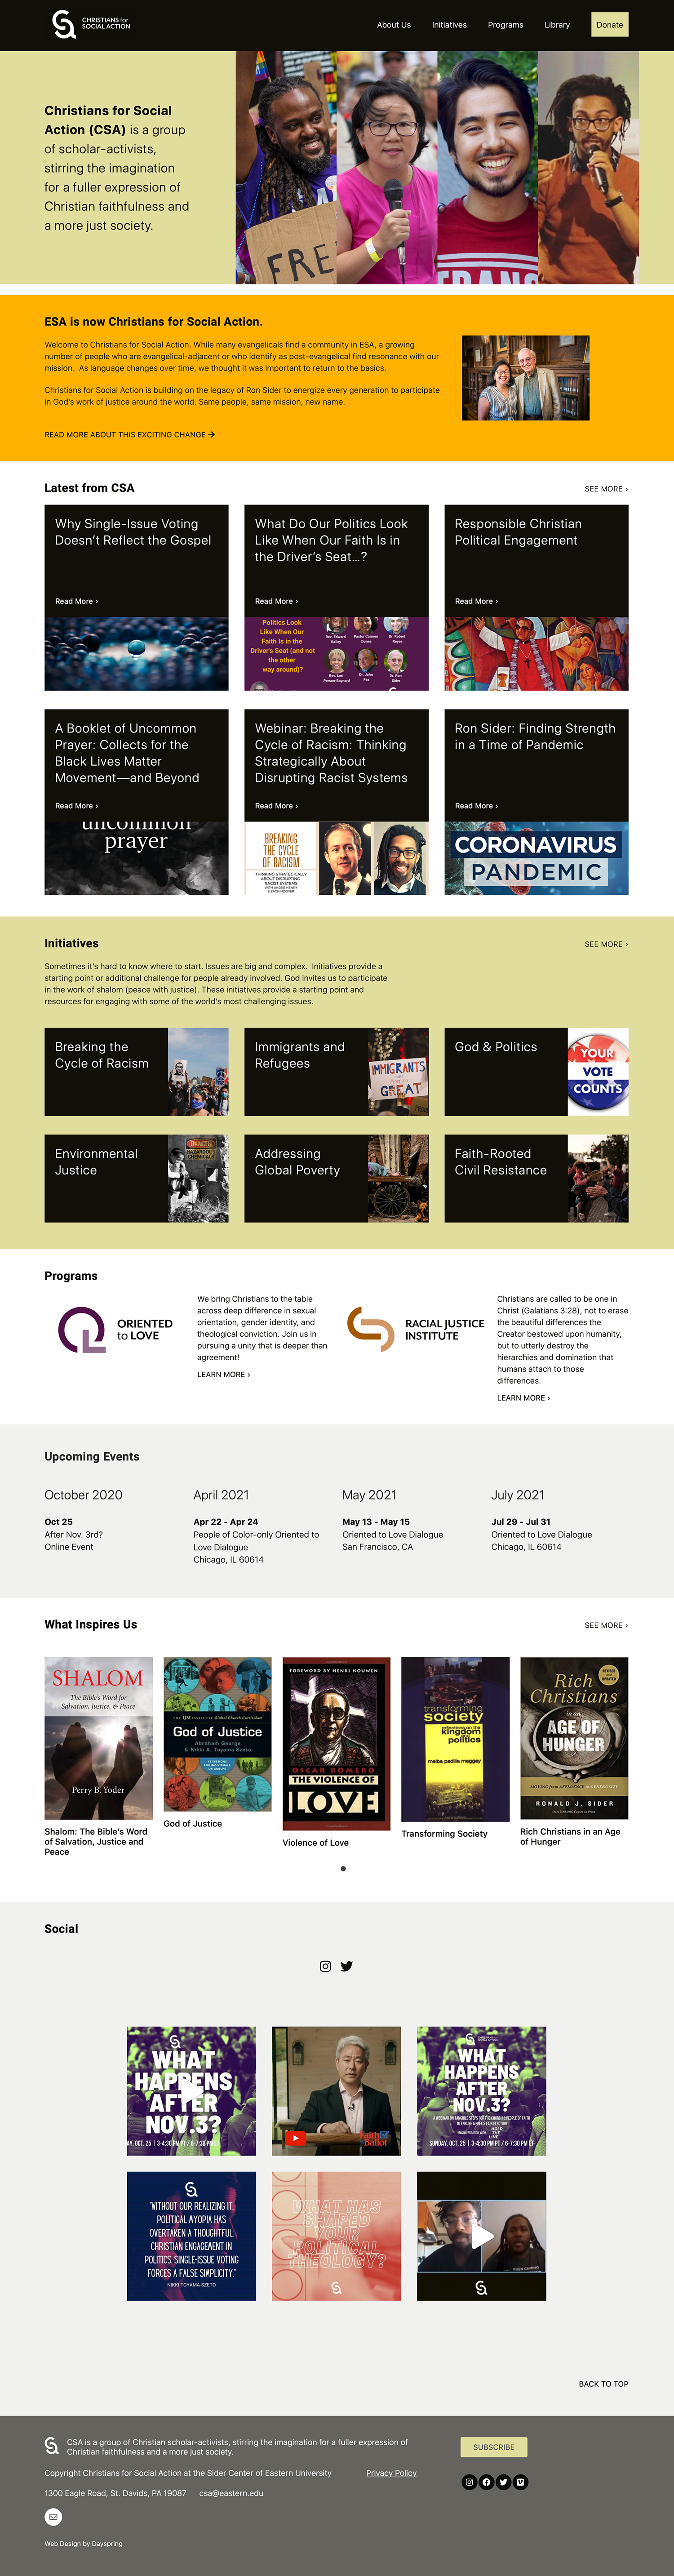 web home page featuring different sections for christians for social action